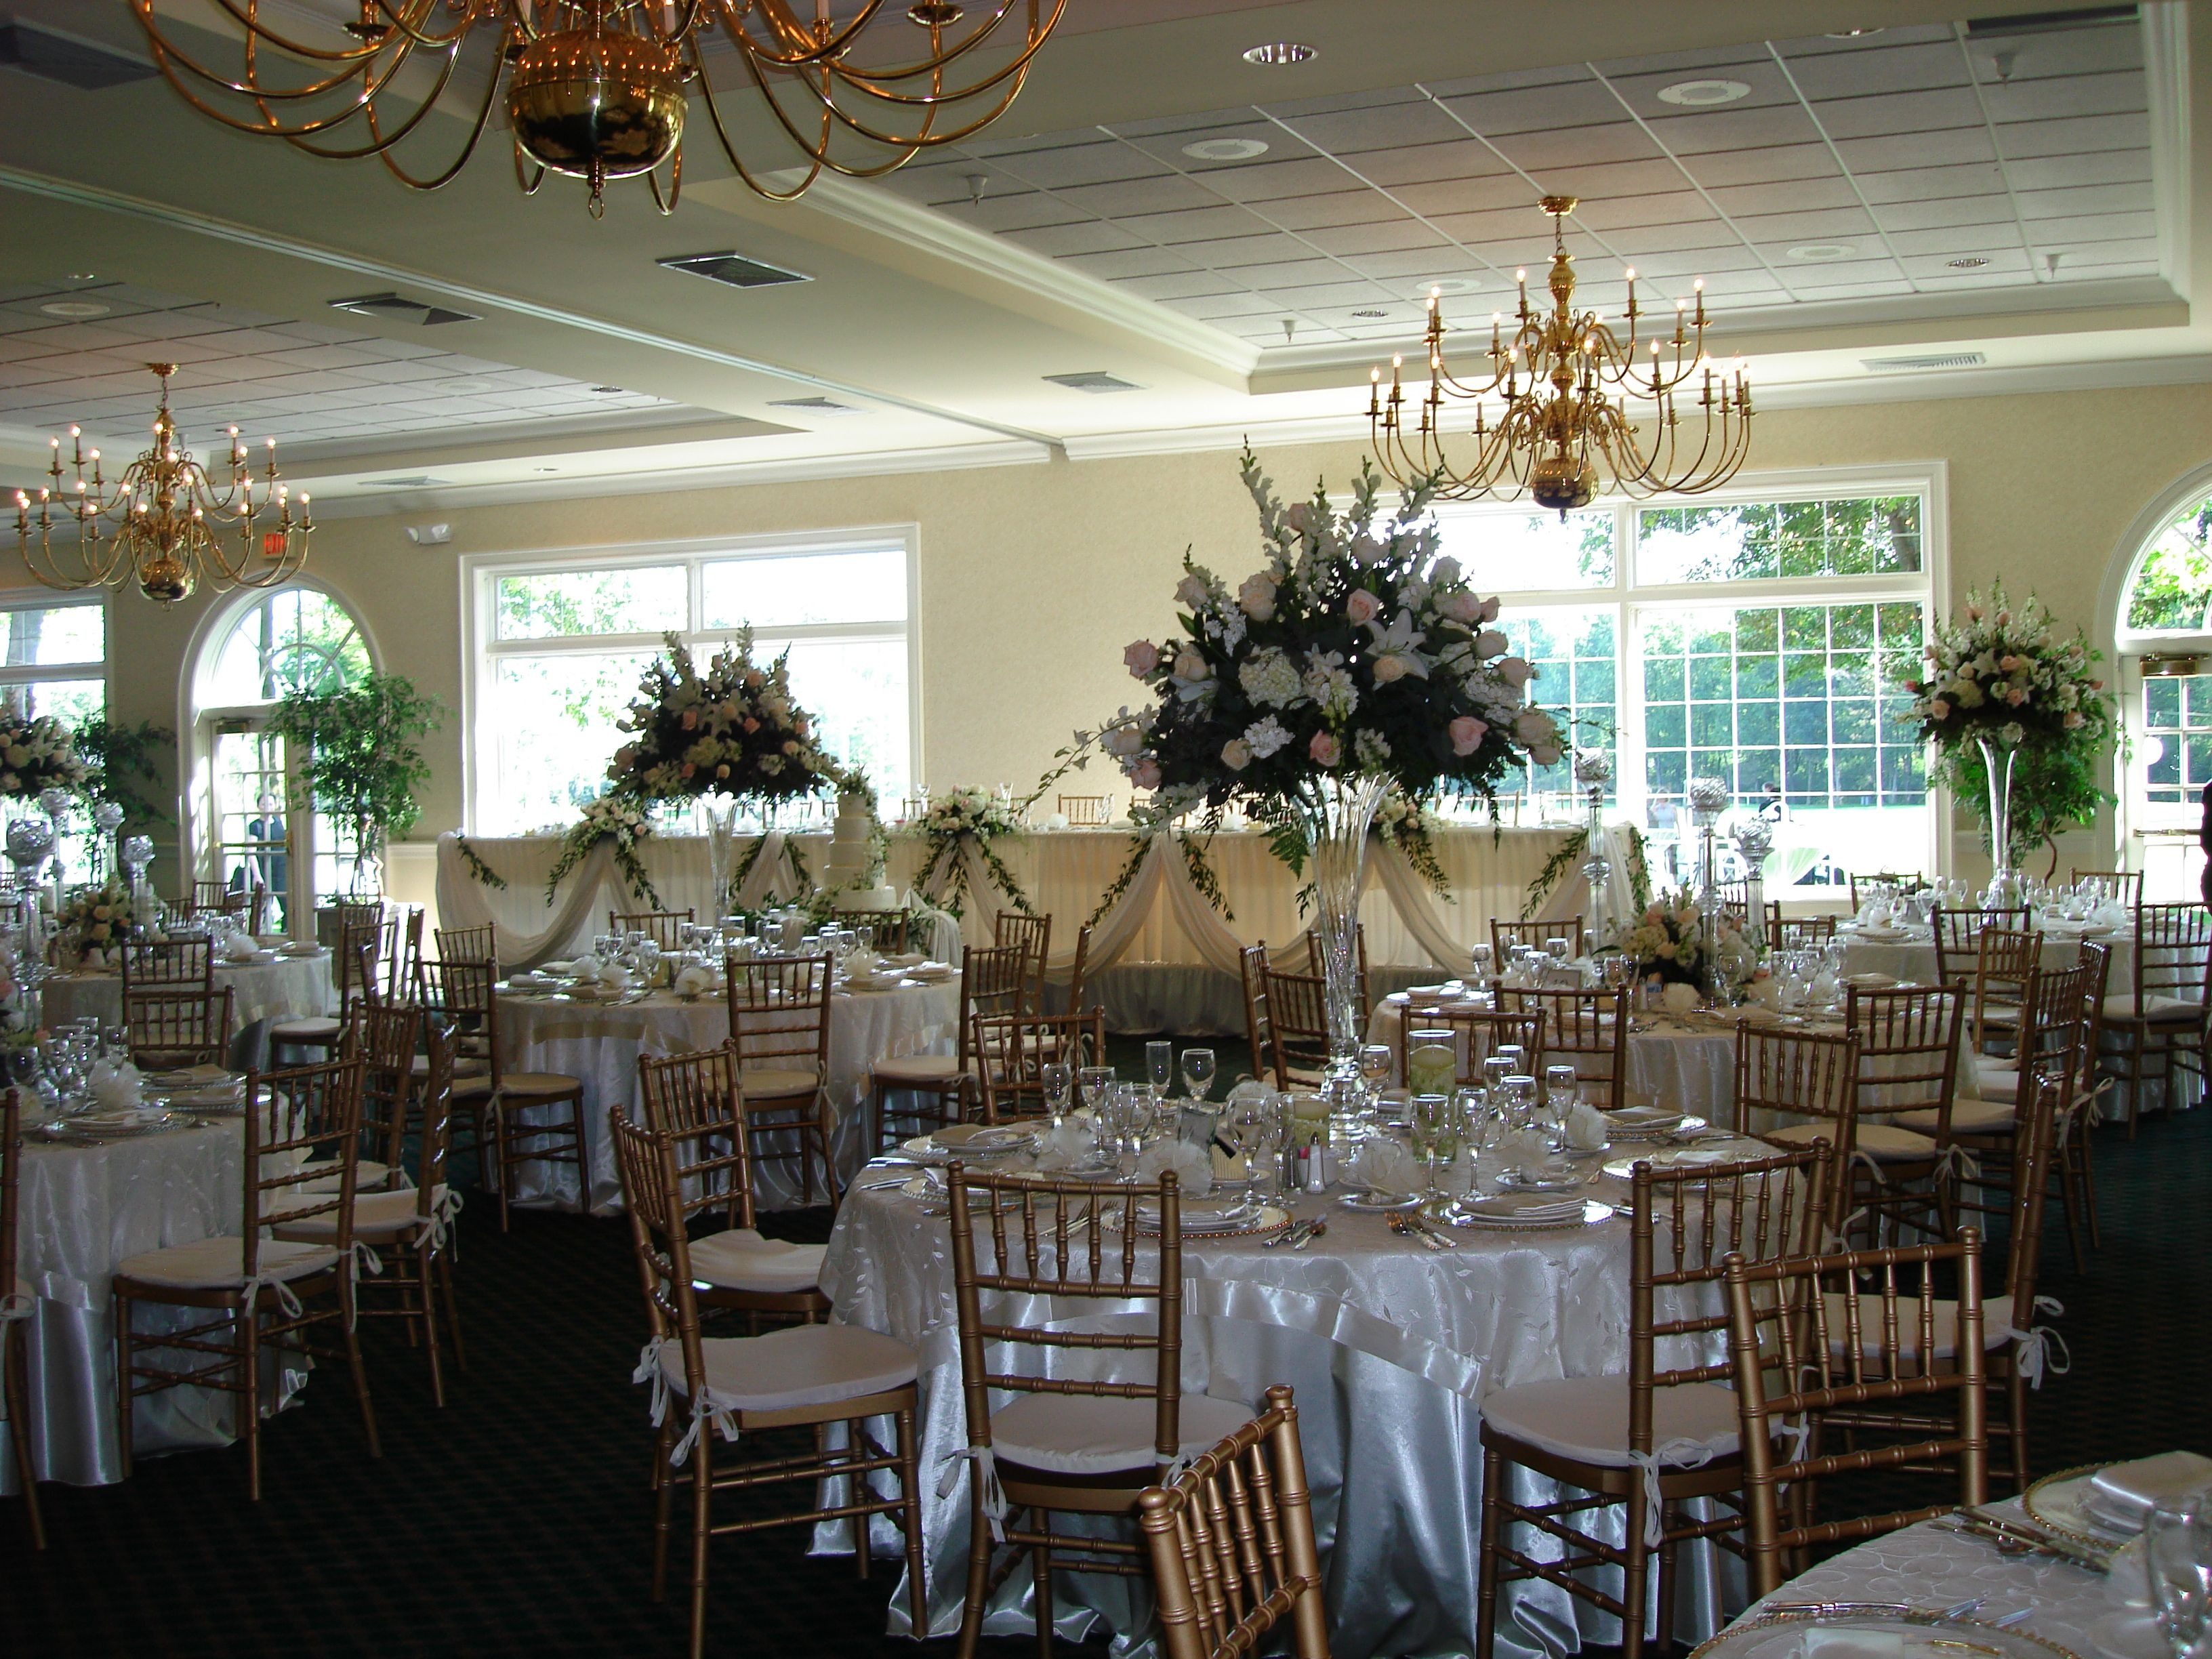 Cherry Creek Golf Club Banquet Center Lakeview Room Pinterest Clubs And